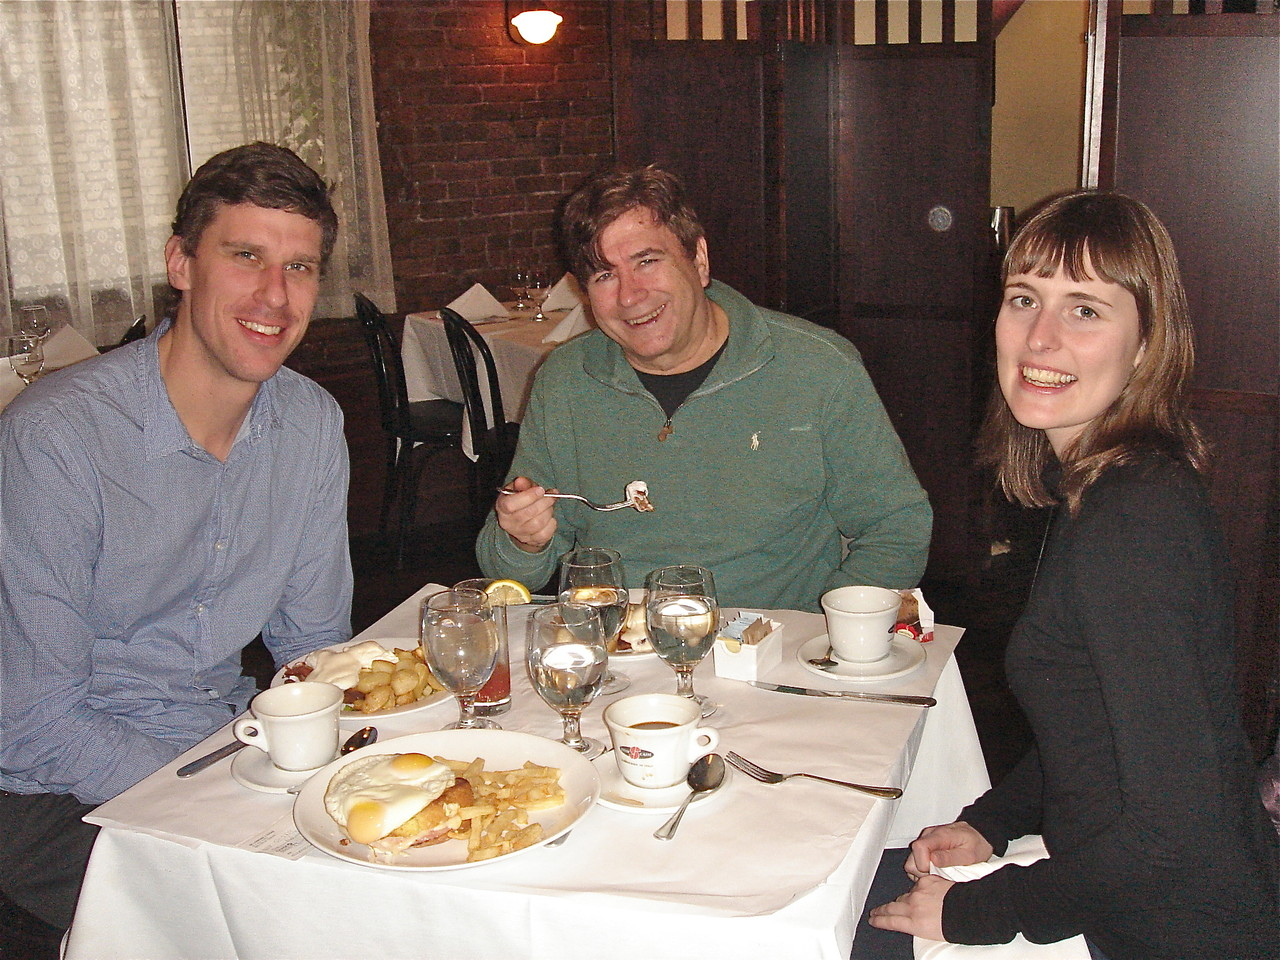 Patrick, John & Anna have brunch at Brabant Belgian Brasserie